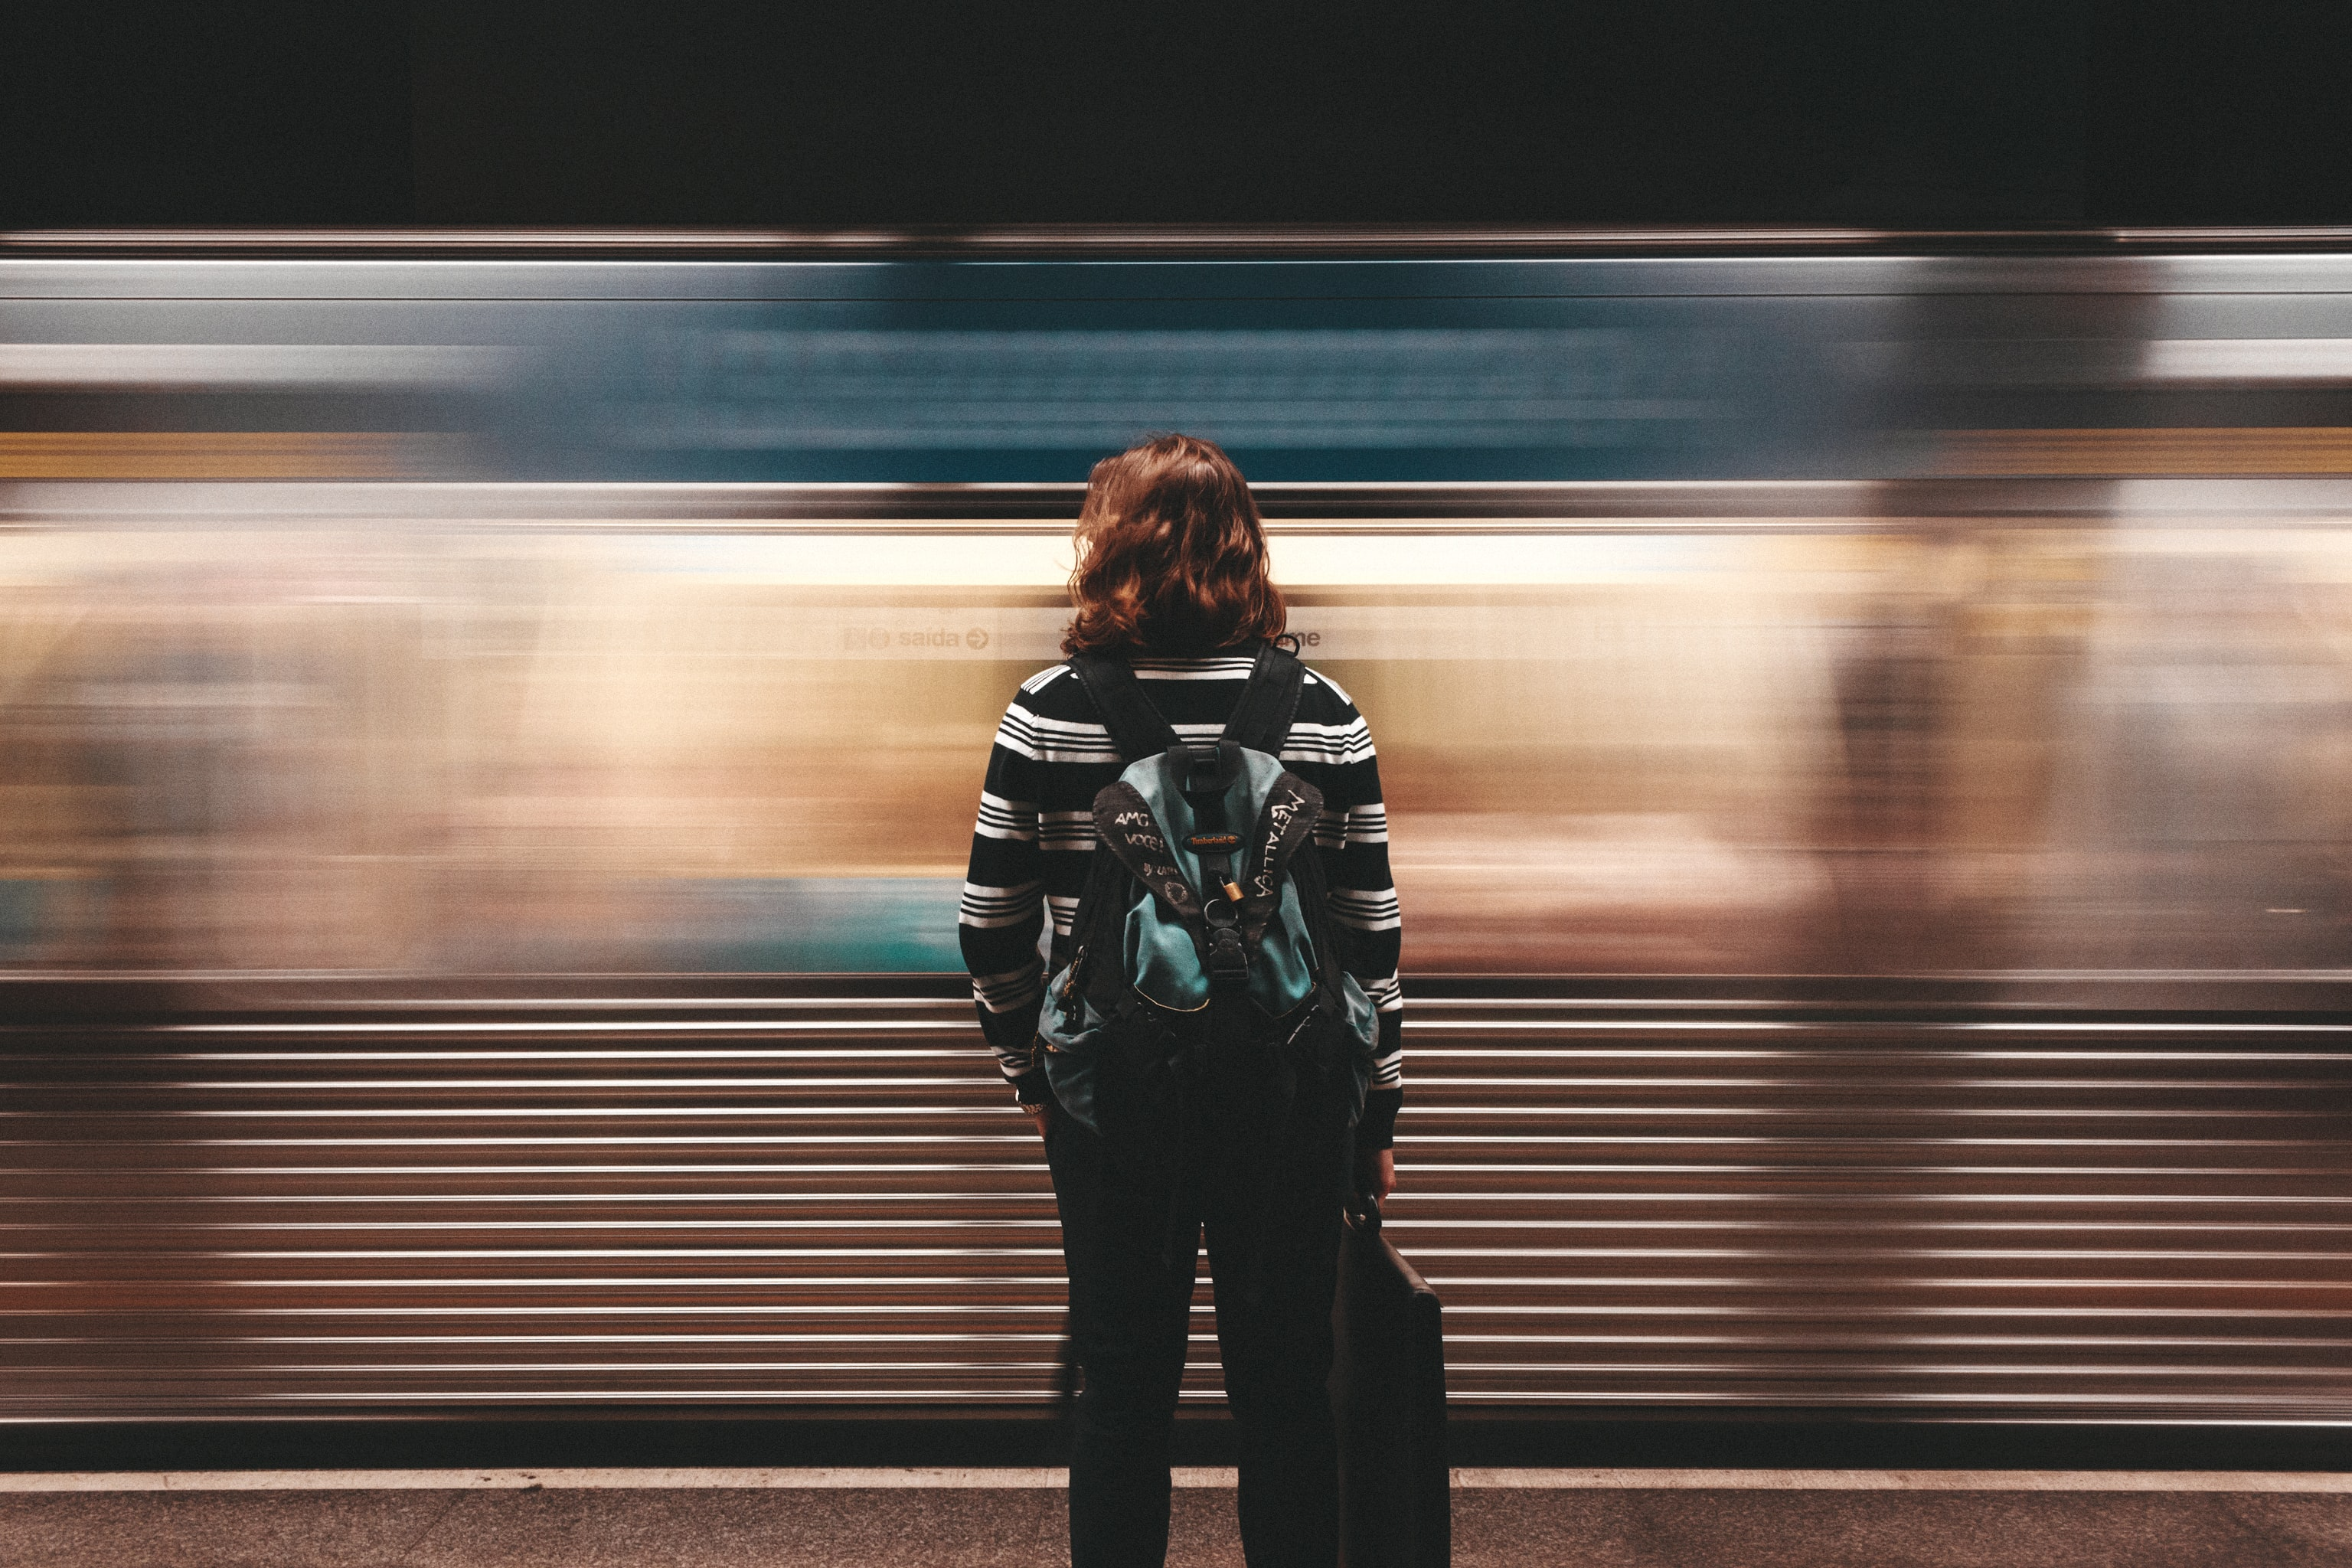 A woman watching a blurry train pass by via long exposure photography in São Paulo